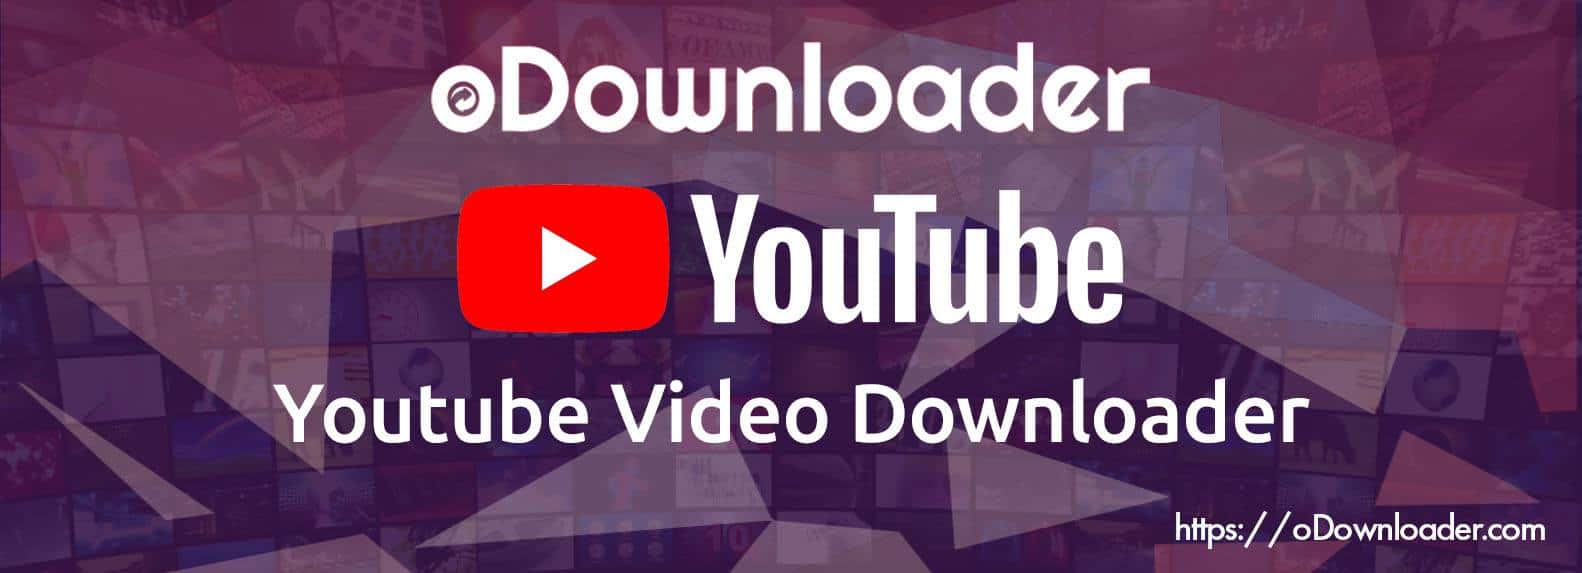 youtube downloader online hd 1080p free download